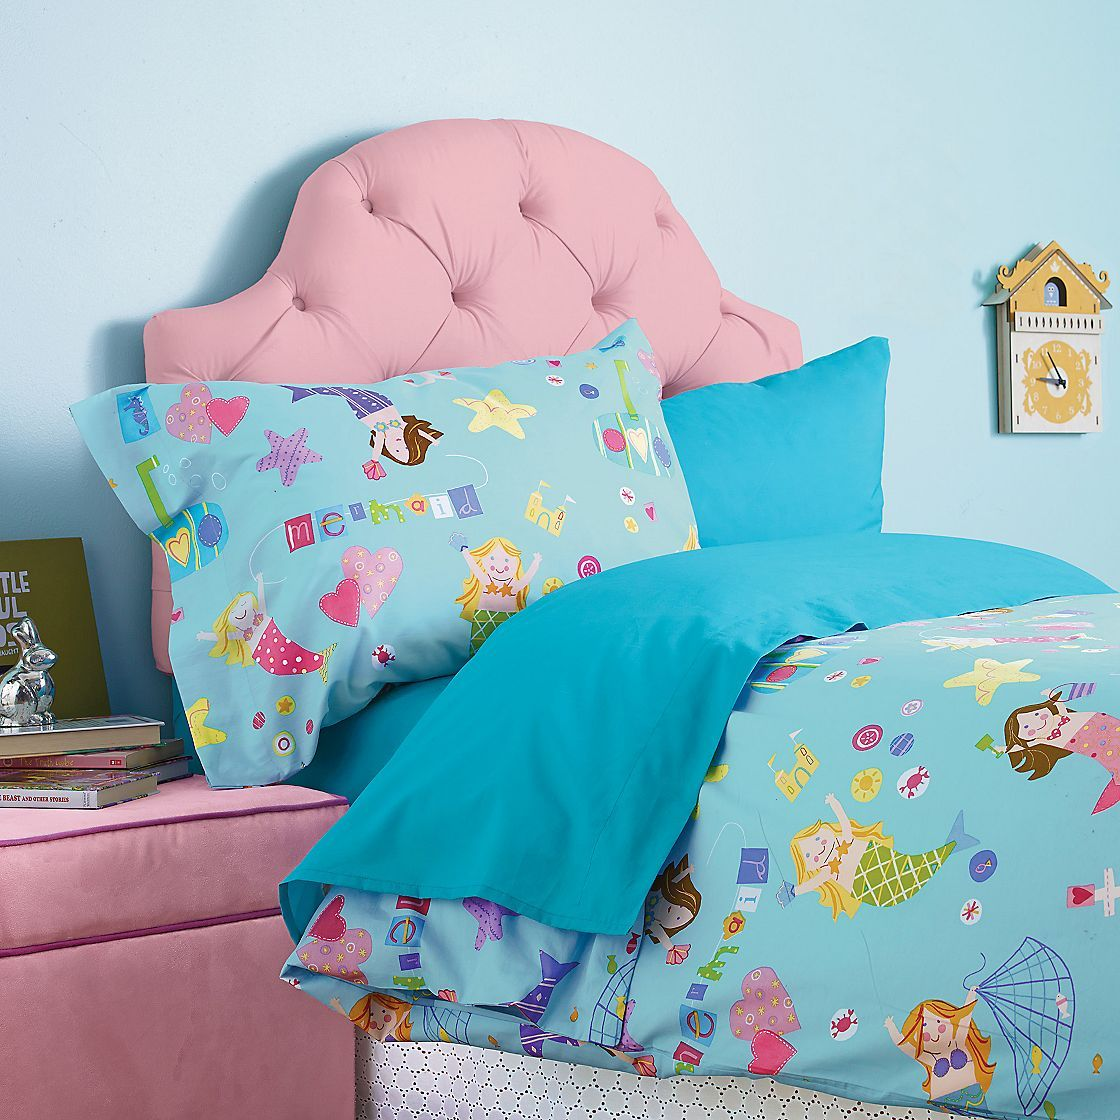 mermaid magic percale bedding company kids fun kid sheets - Kid Sheets